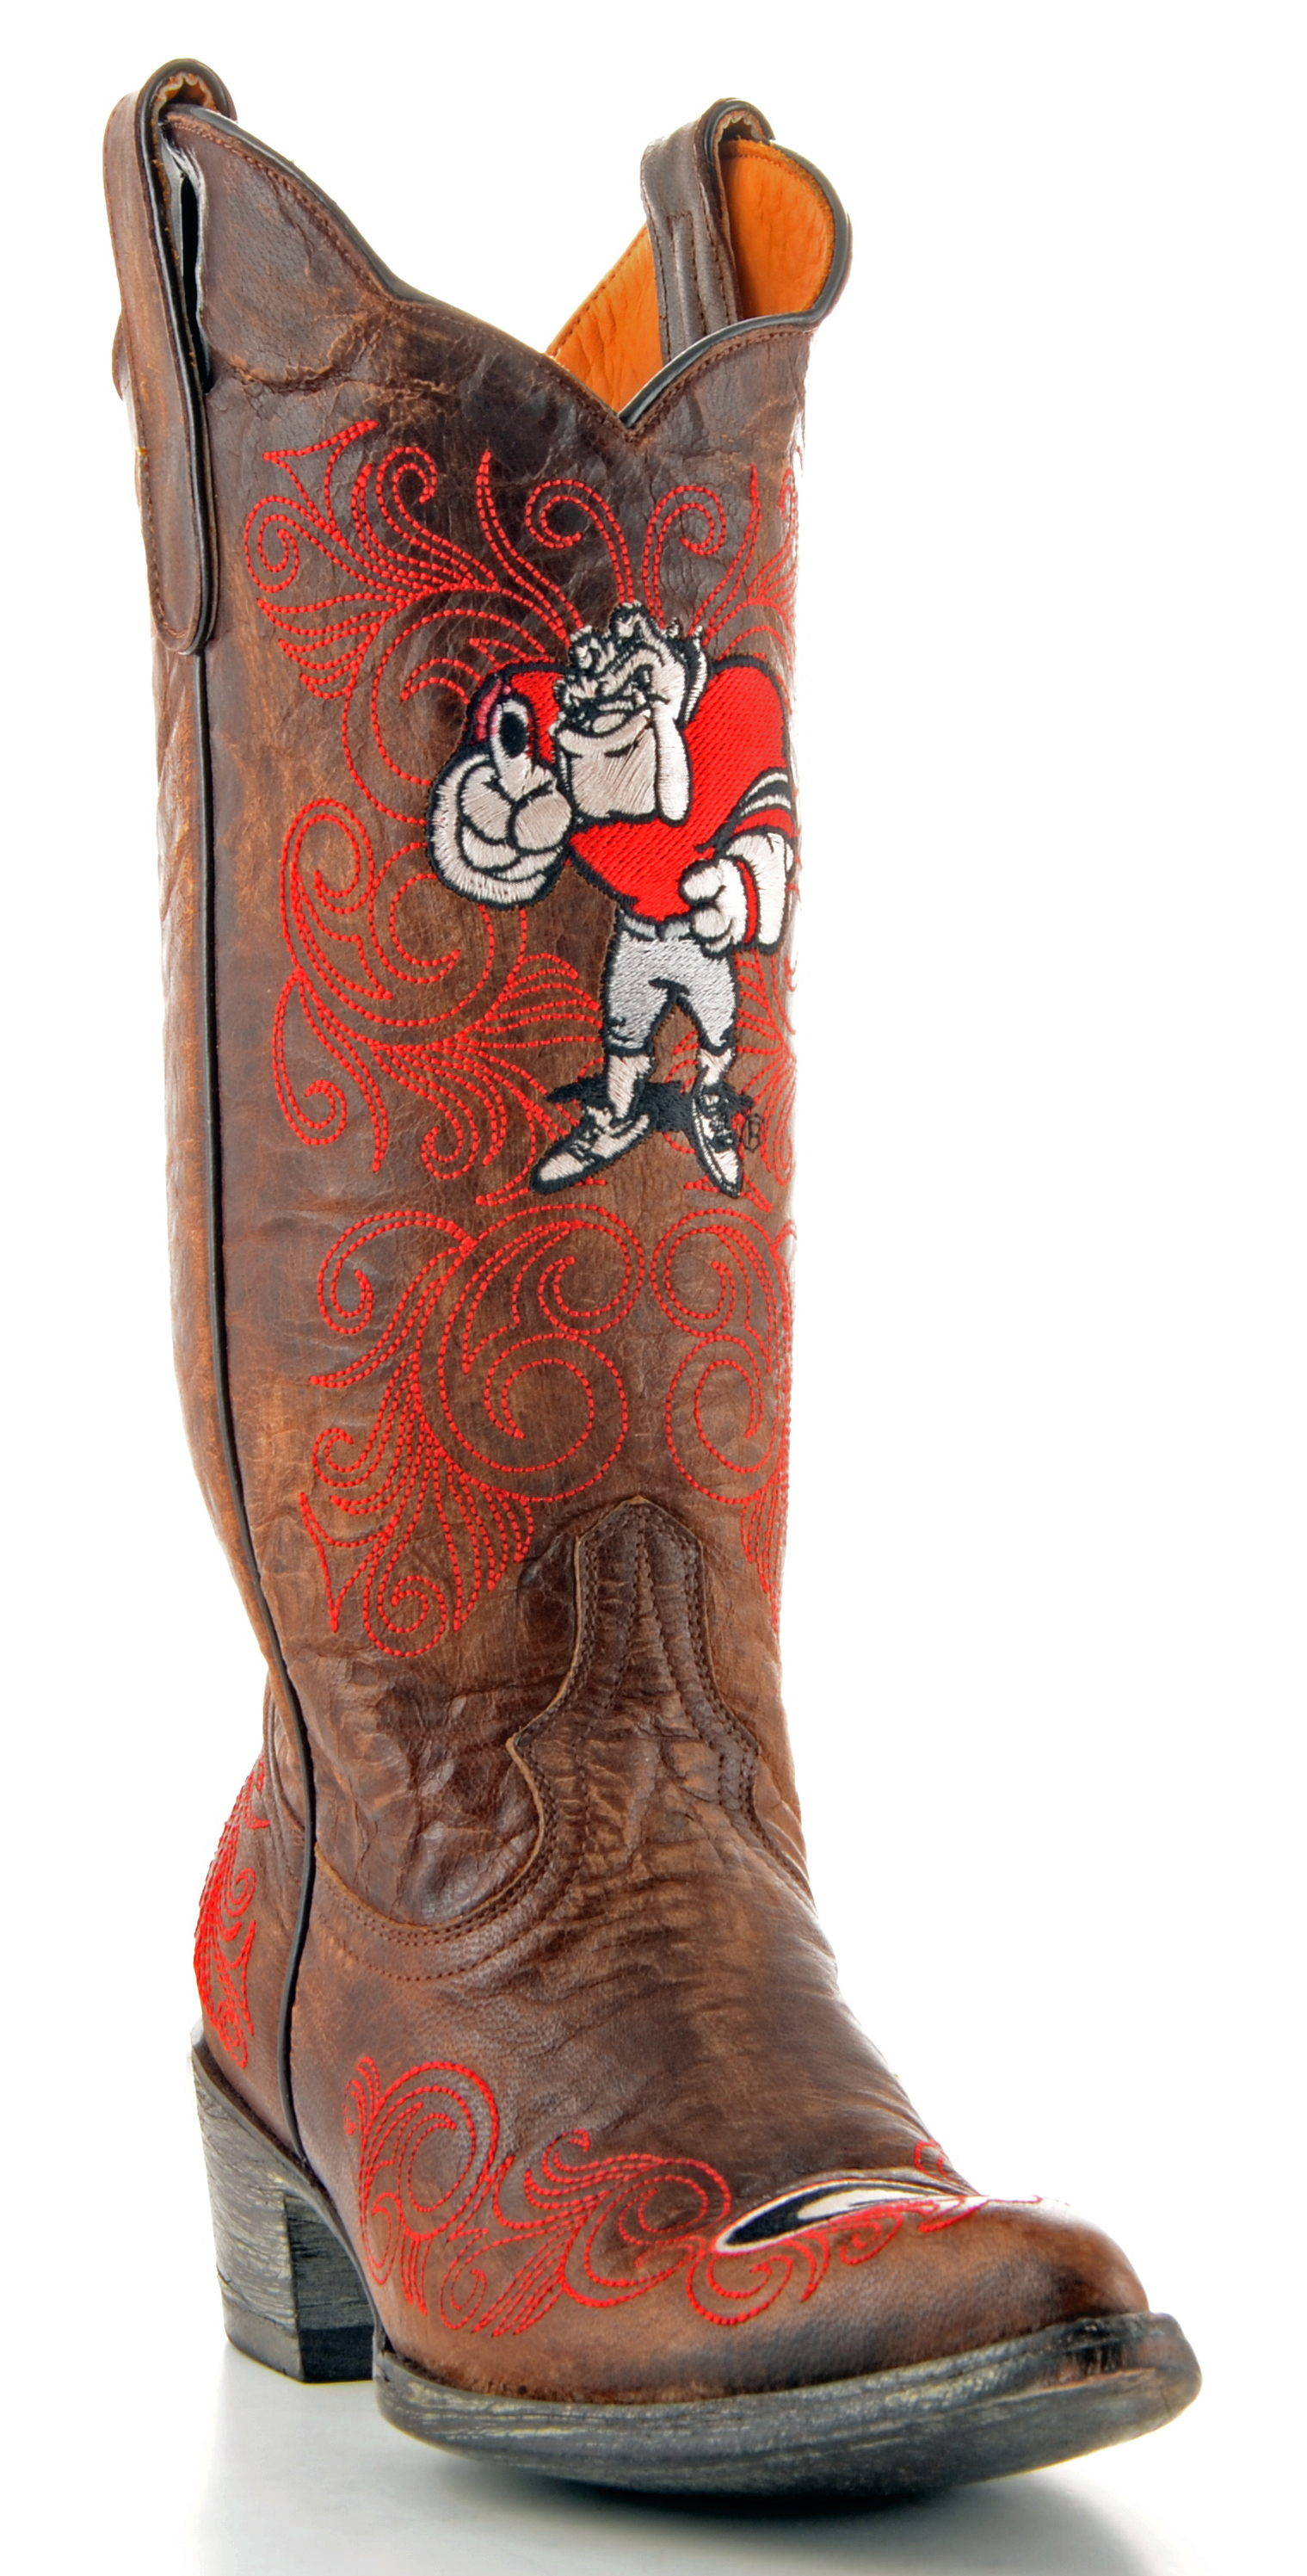 "Gameday Boots Womens 13"" Tall Leather University Of Georgia Cowboy Boots by GameDay Boots"